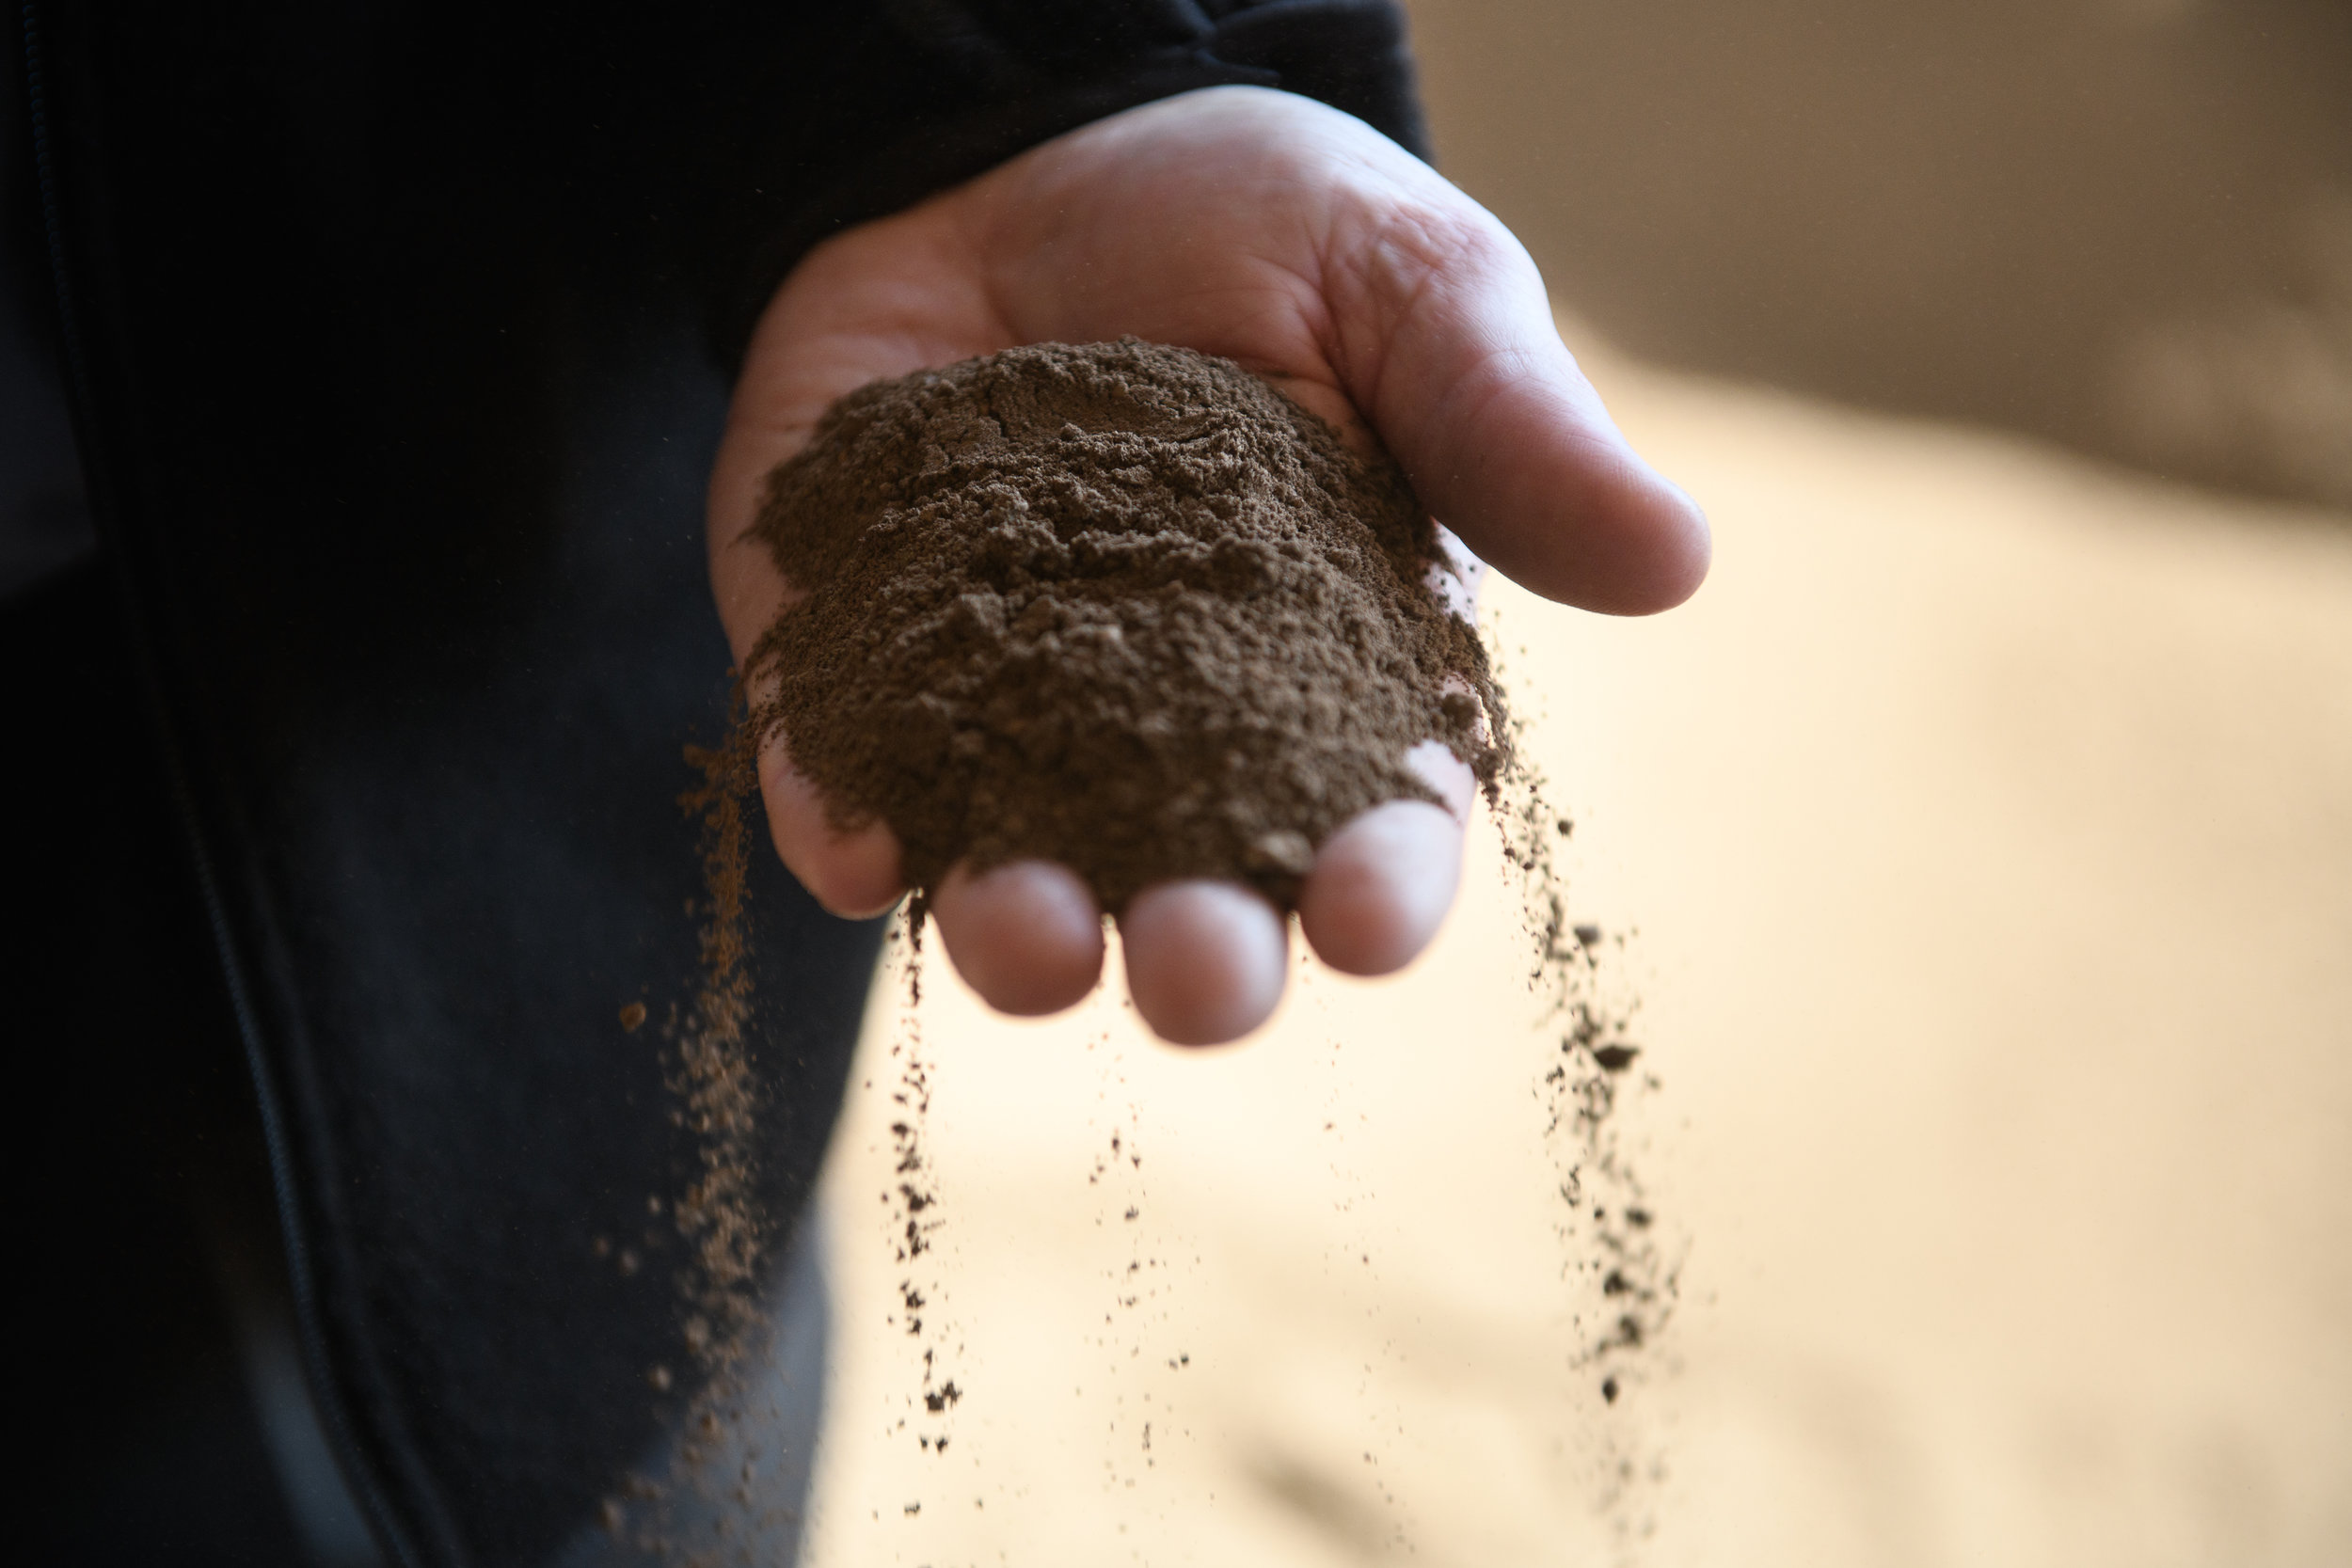 Grant McKnight, president and founder of DuraEdge, holds some of the raw mineral from his raw clay production in his hand on Monday, March 19, 2018 in Slippery Rock, Pa. DuraEdge is the country's top producer of baseball dirt. Their mix of clay, sand and silt will be used at many ballparks in Major League Baseball.  - Justin Merriman for The Wall Street Journal